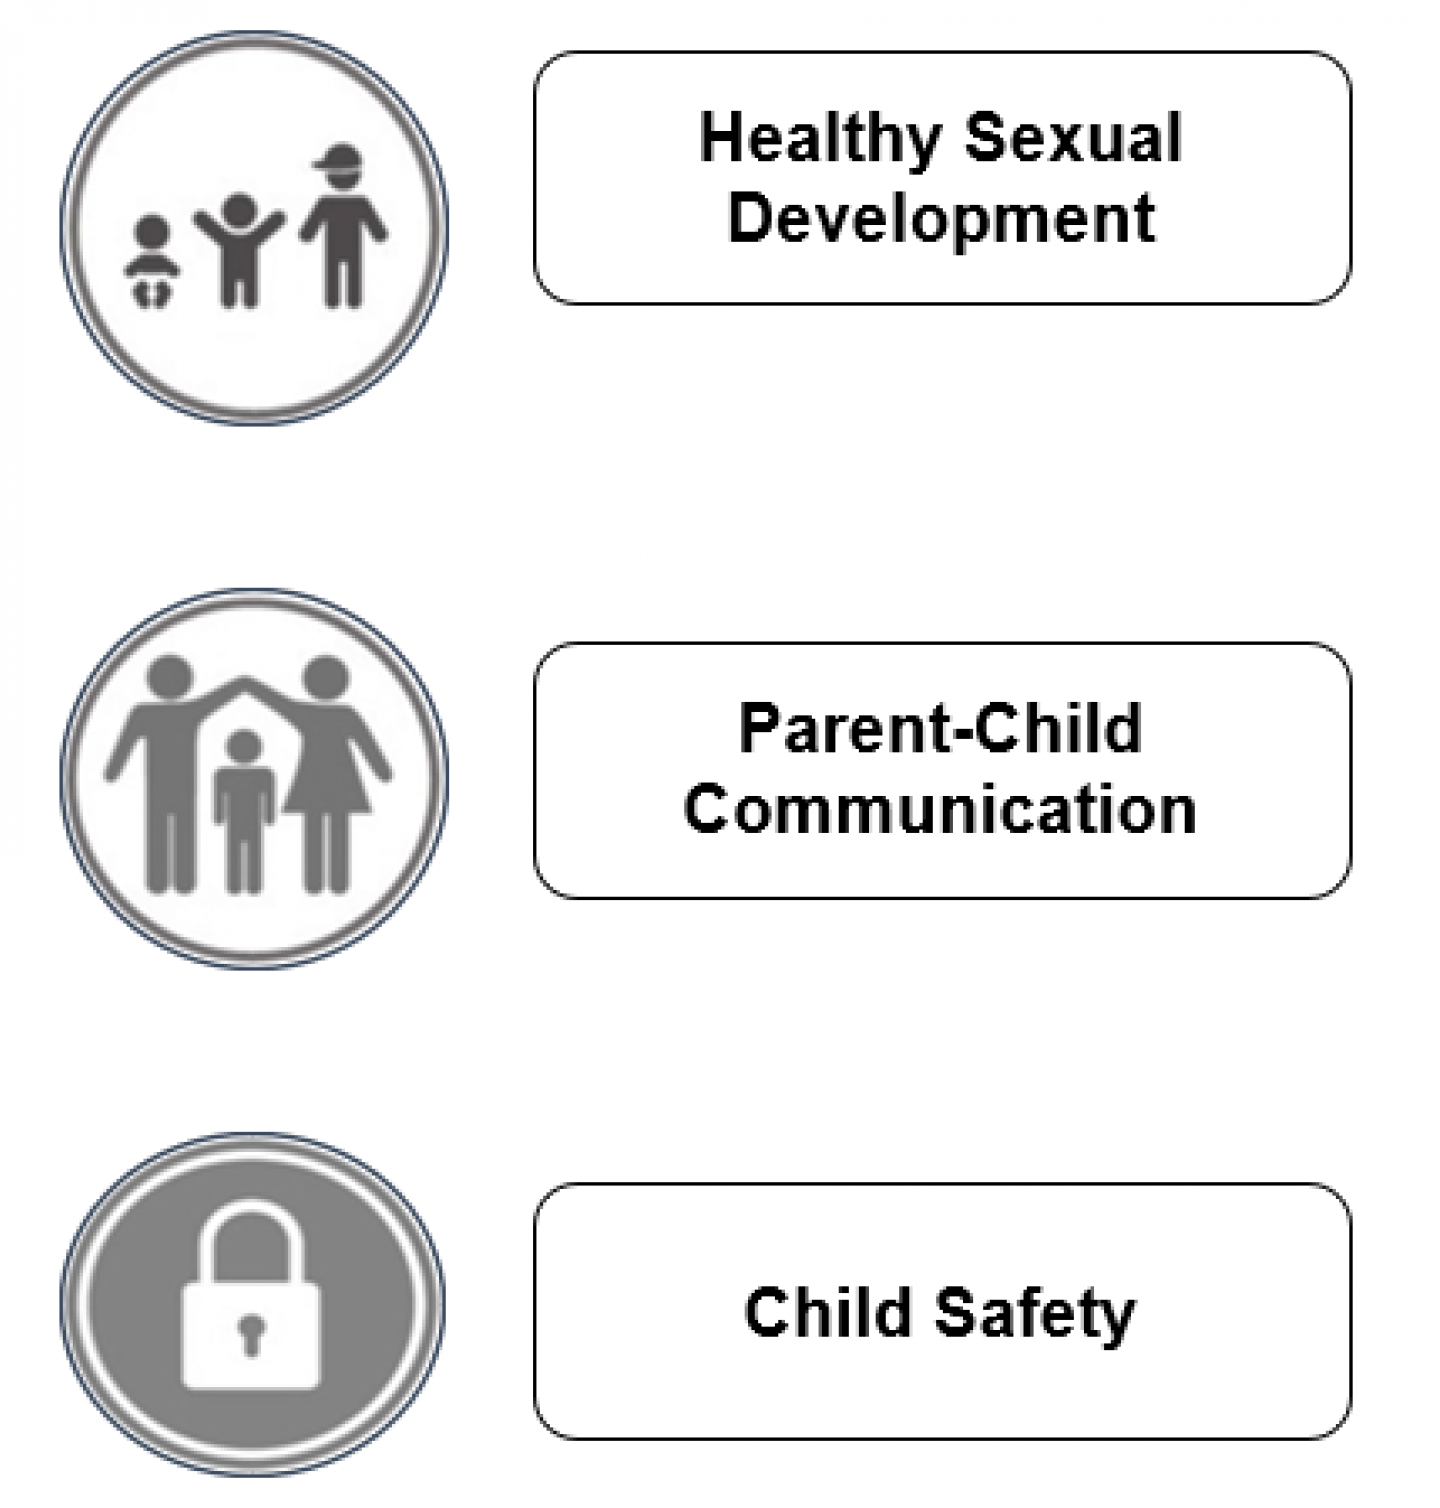 Child Maltreatment Solutions Network at Penn State